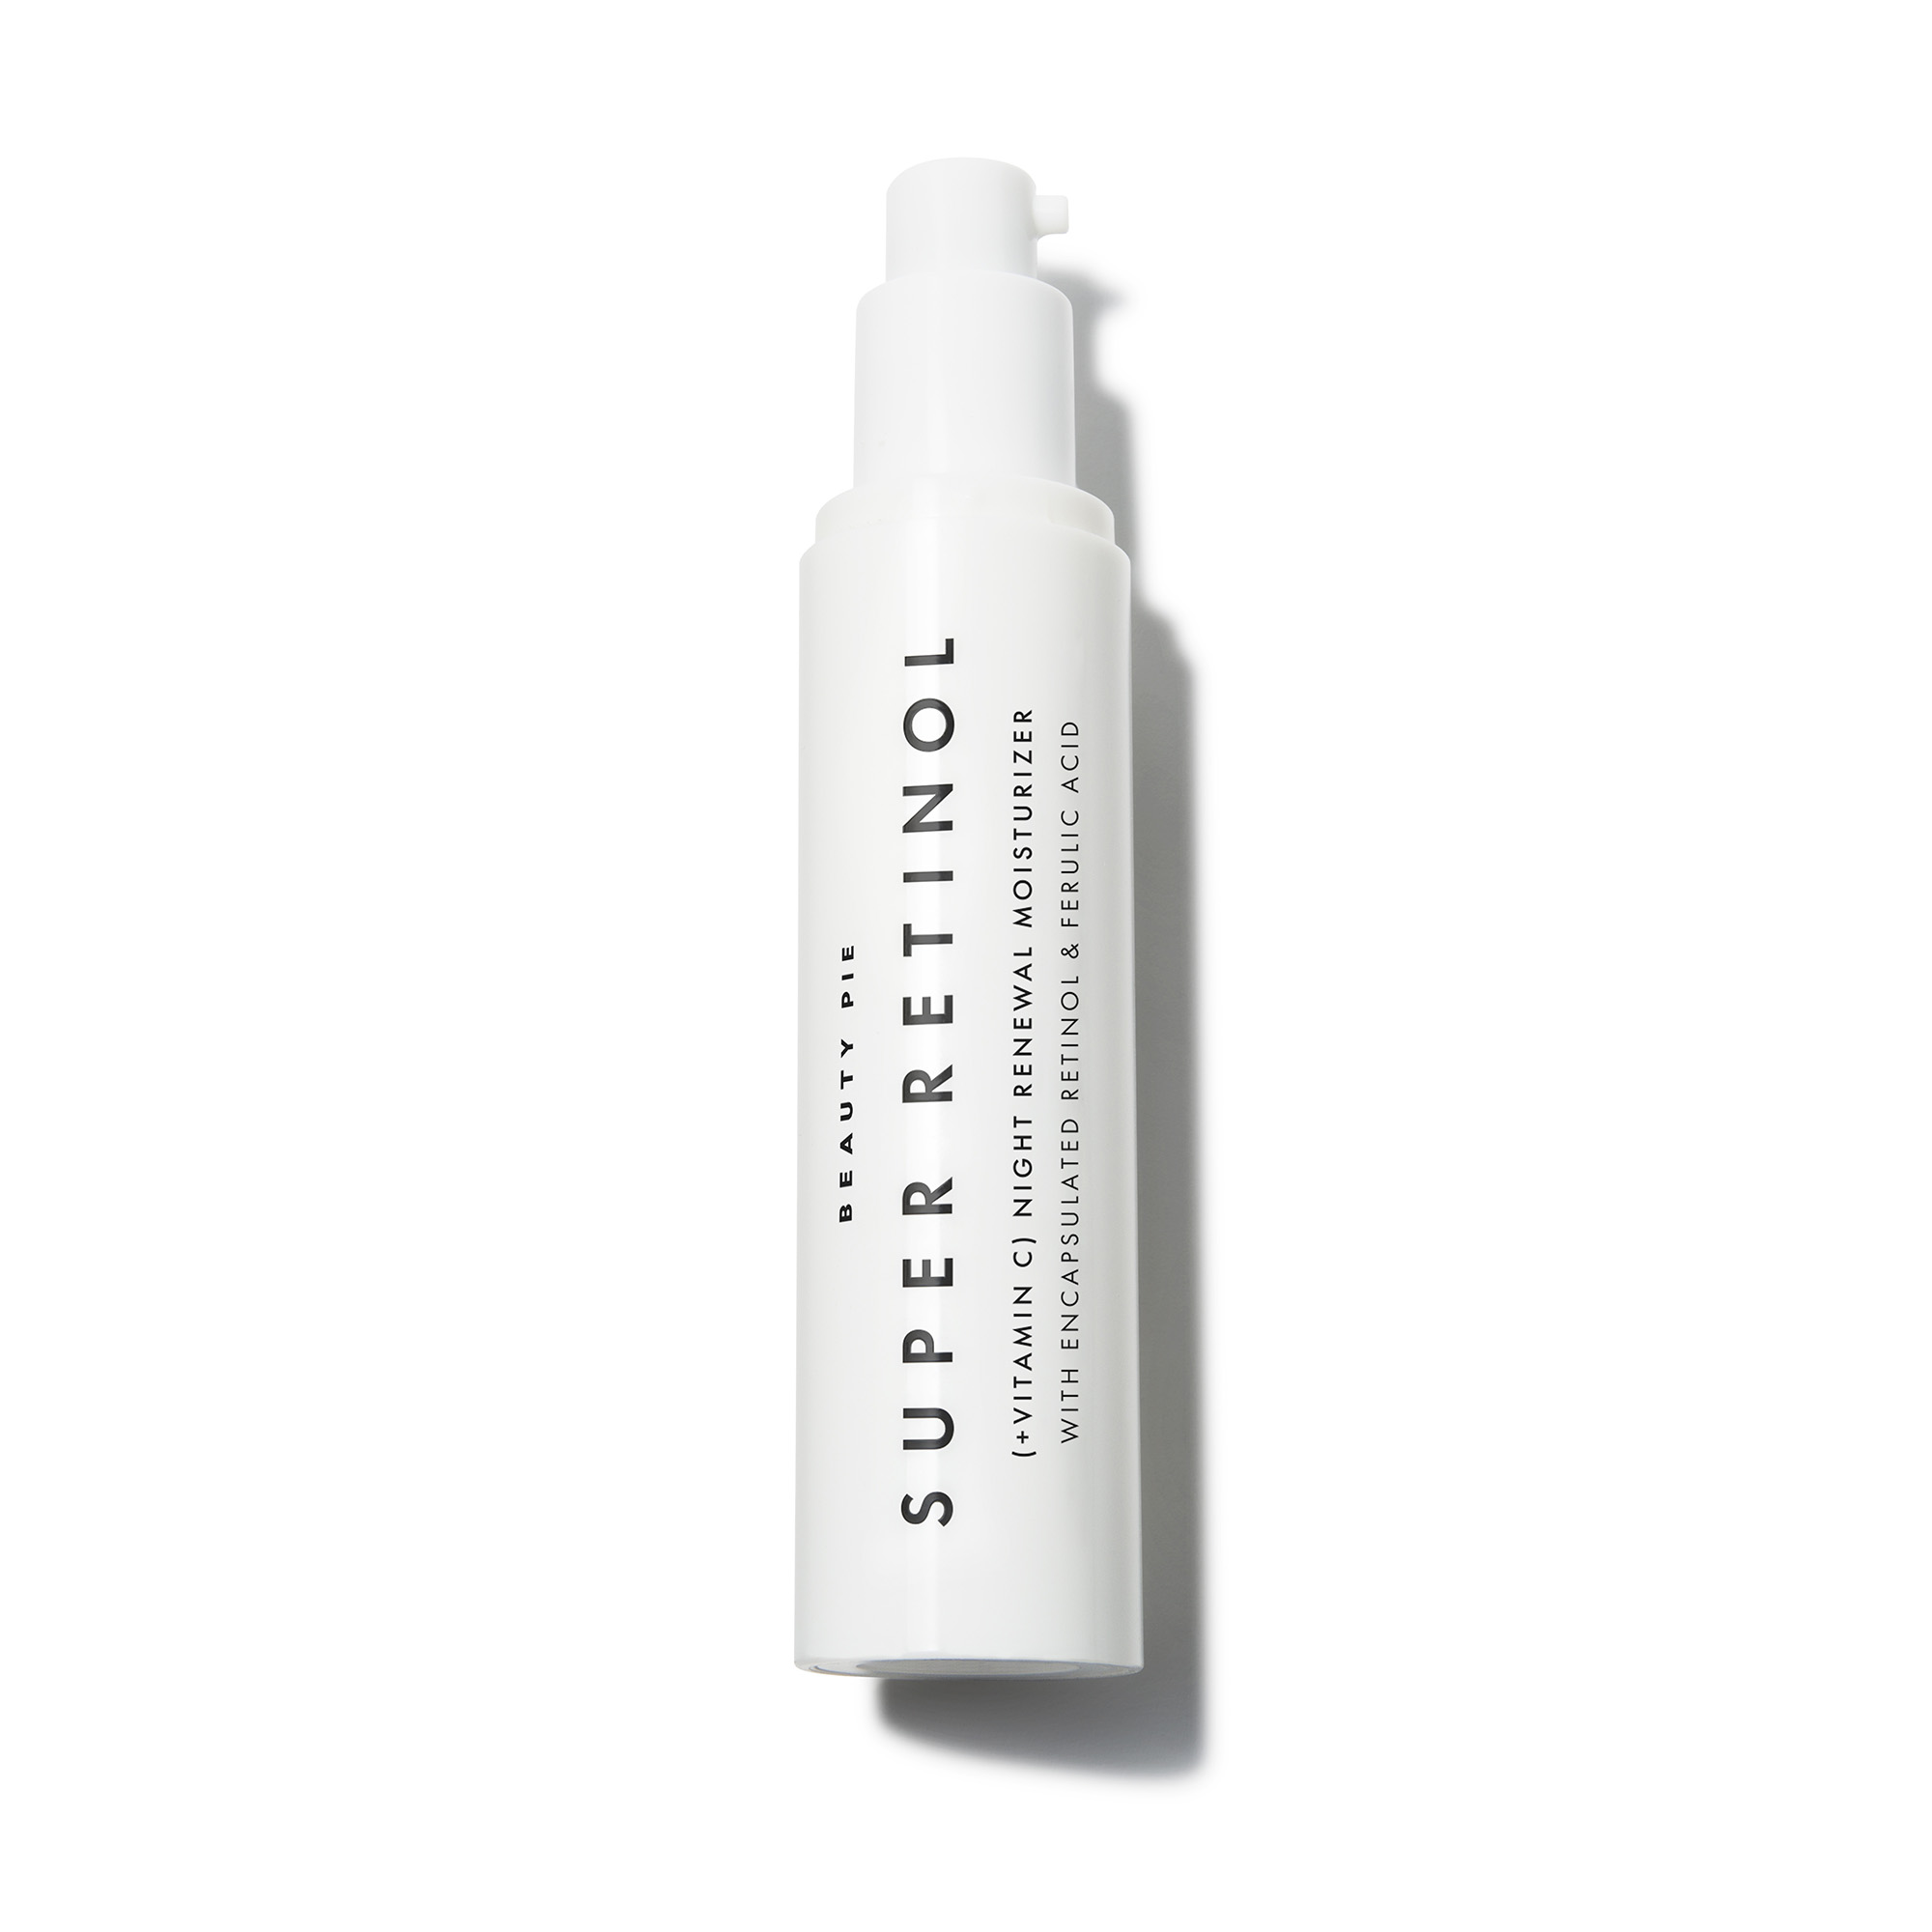 Super Retinol (+ Vitamin C) Night Renewal Moisturizer by Beauty Pie